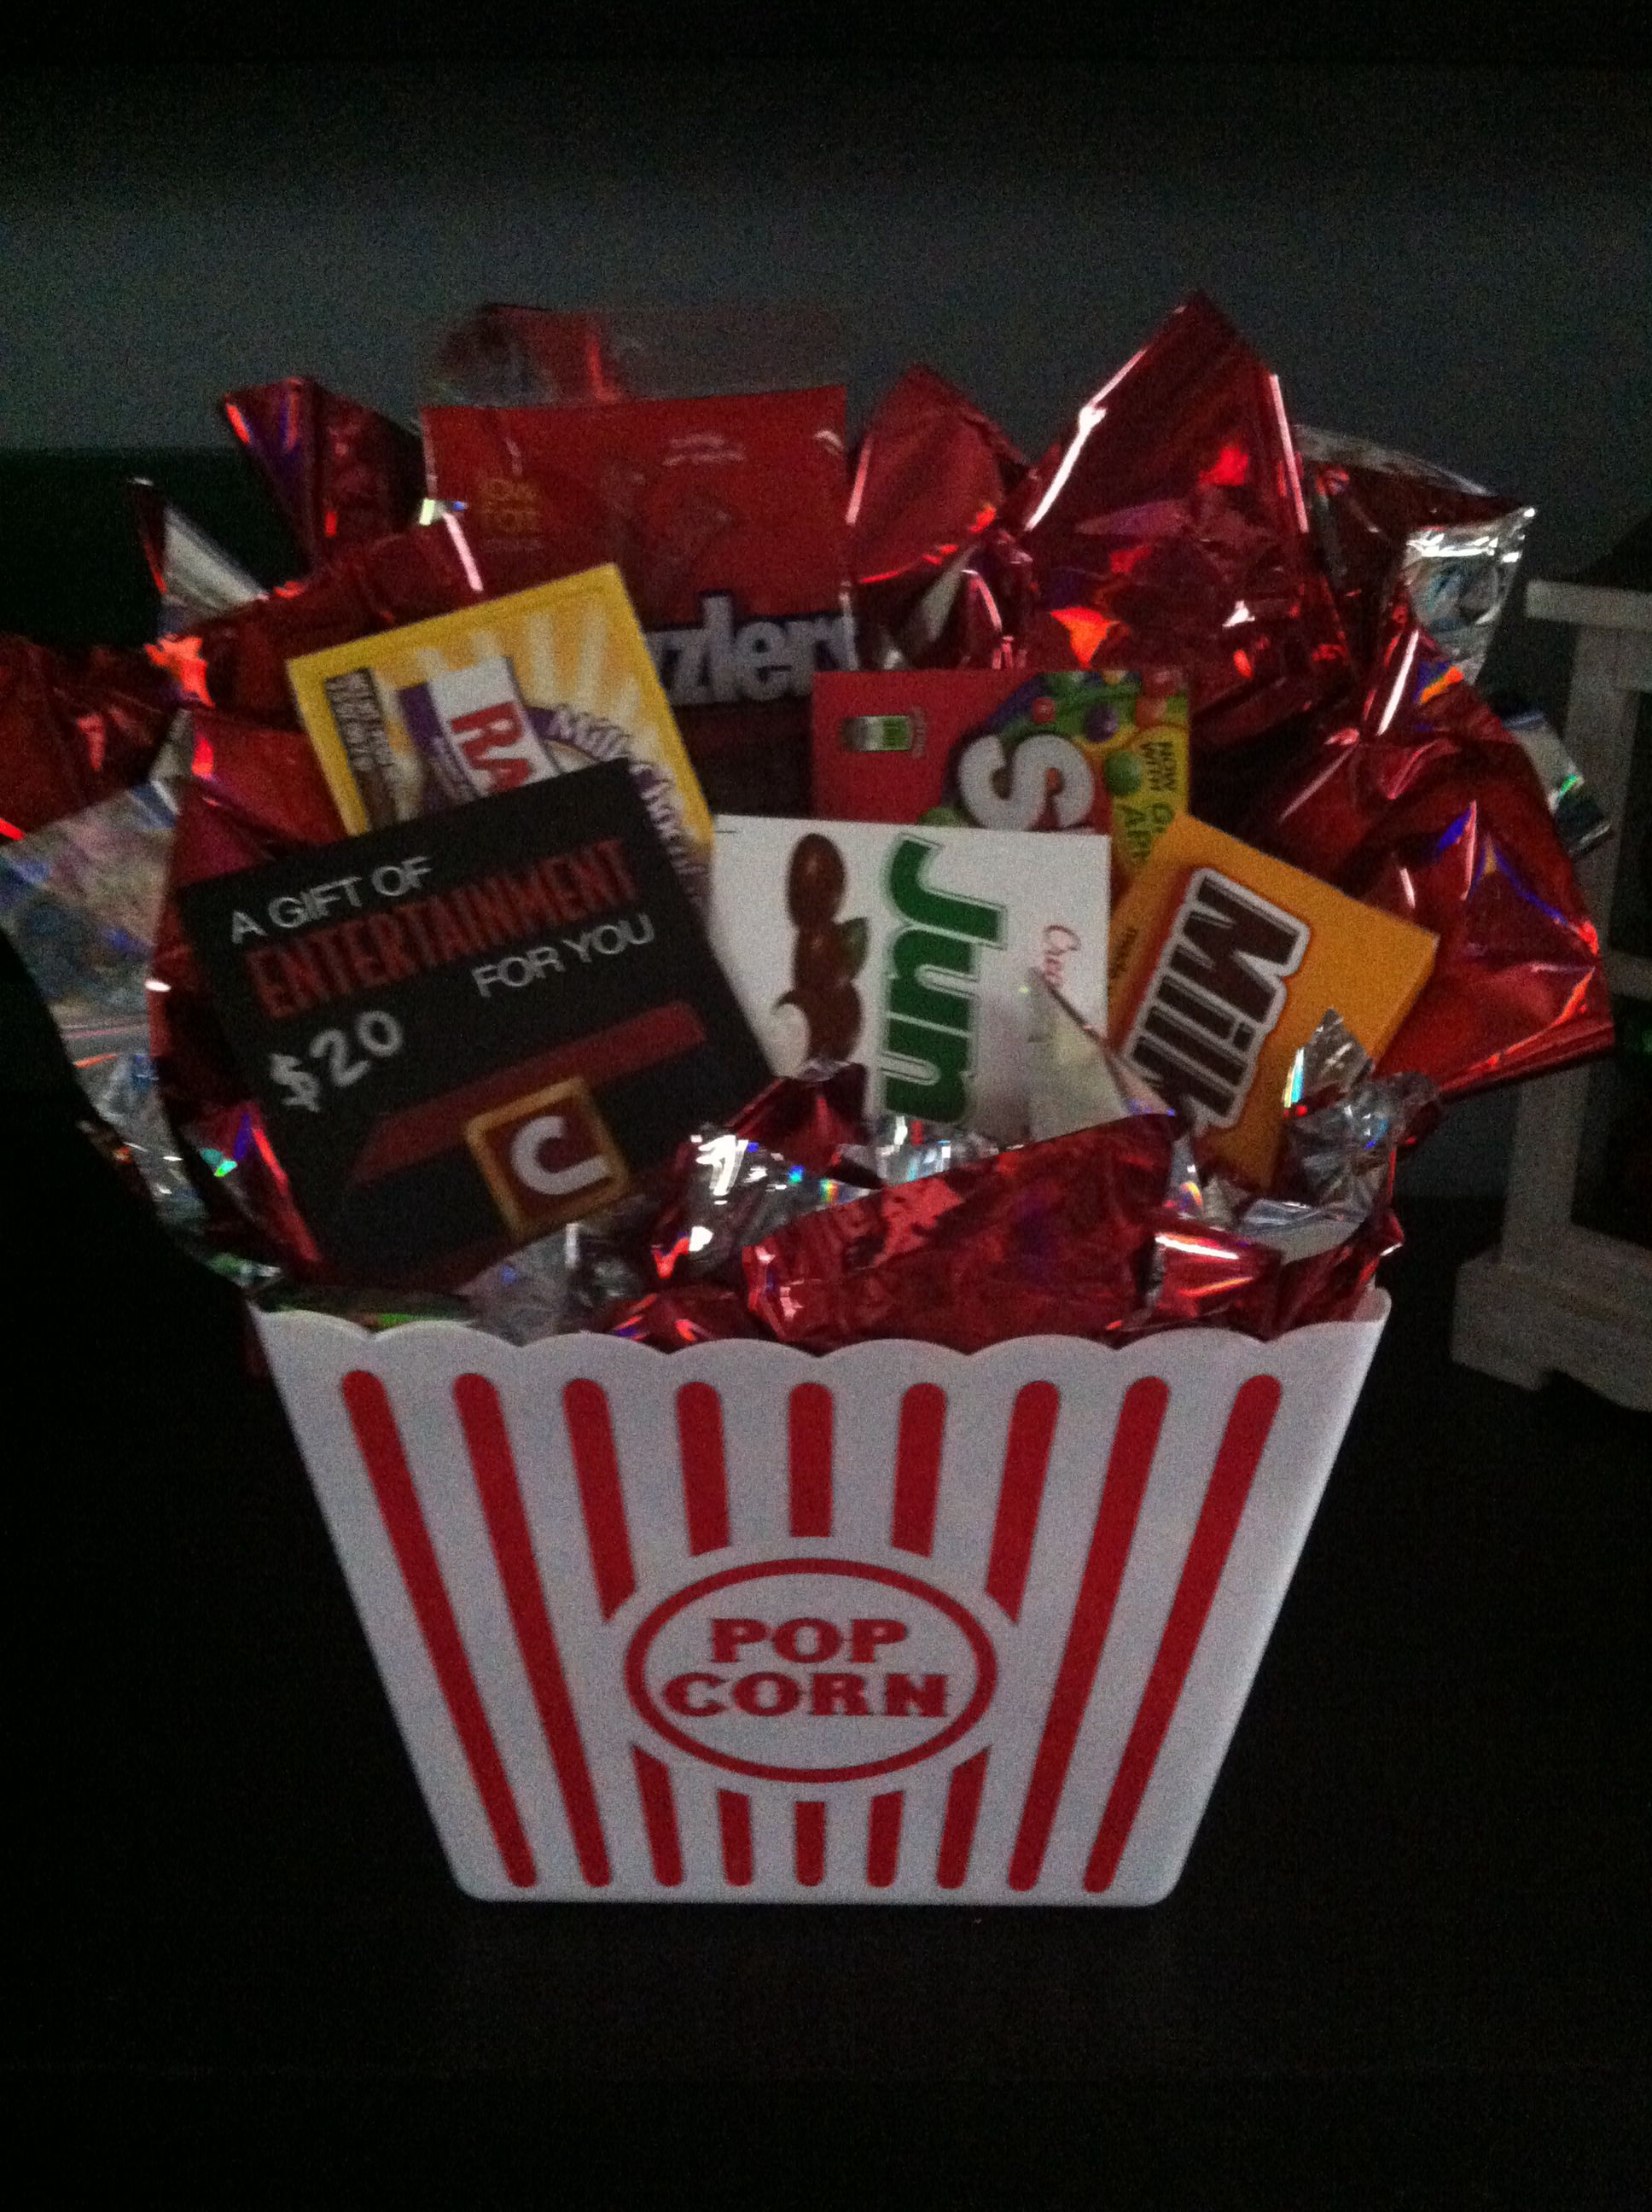 Movie grab bag gift. Cute work give away idea. | Birthdays ...